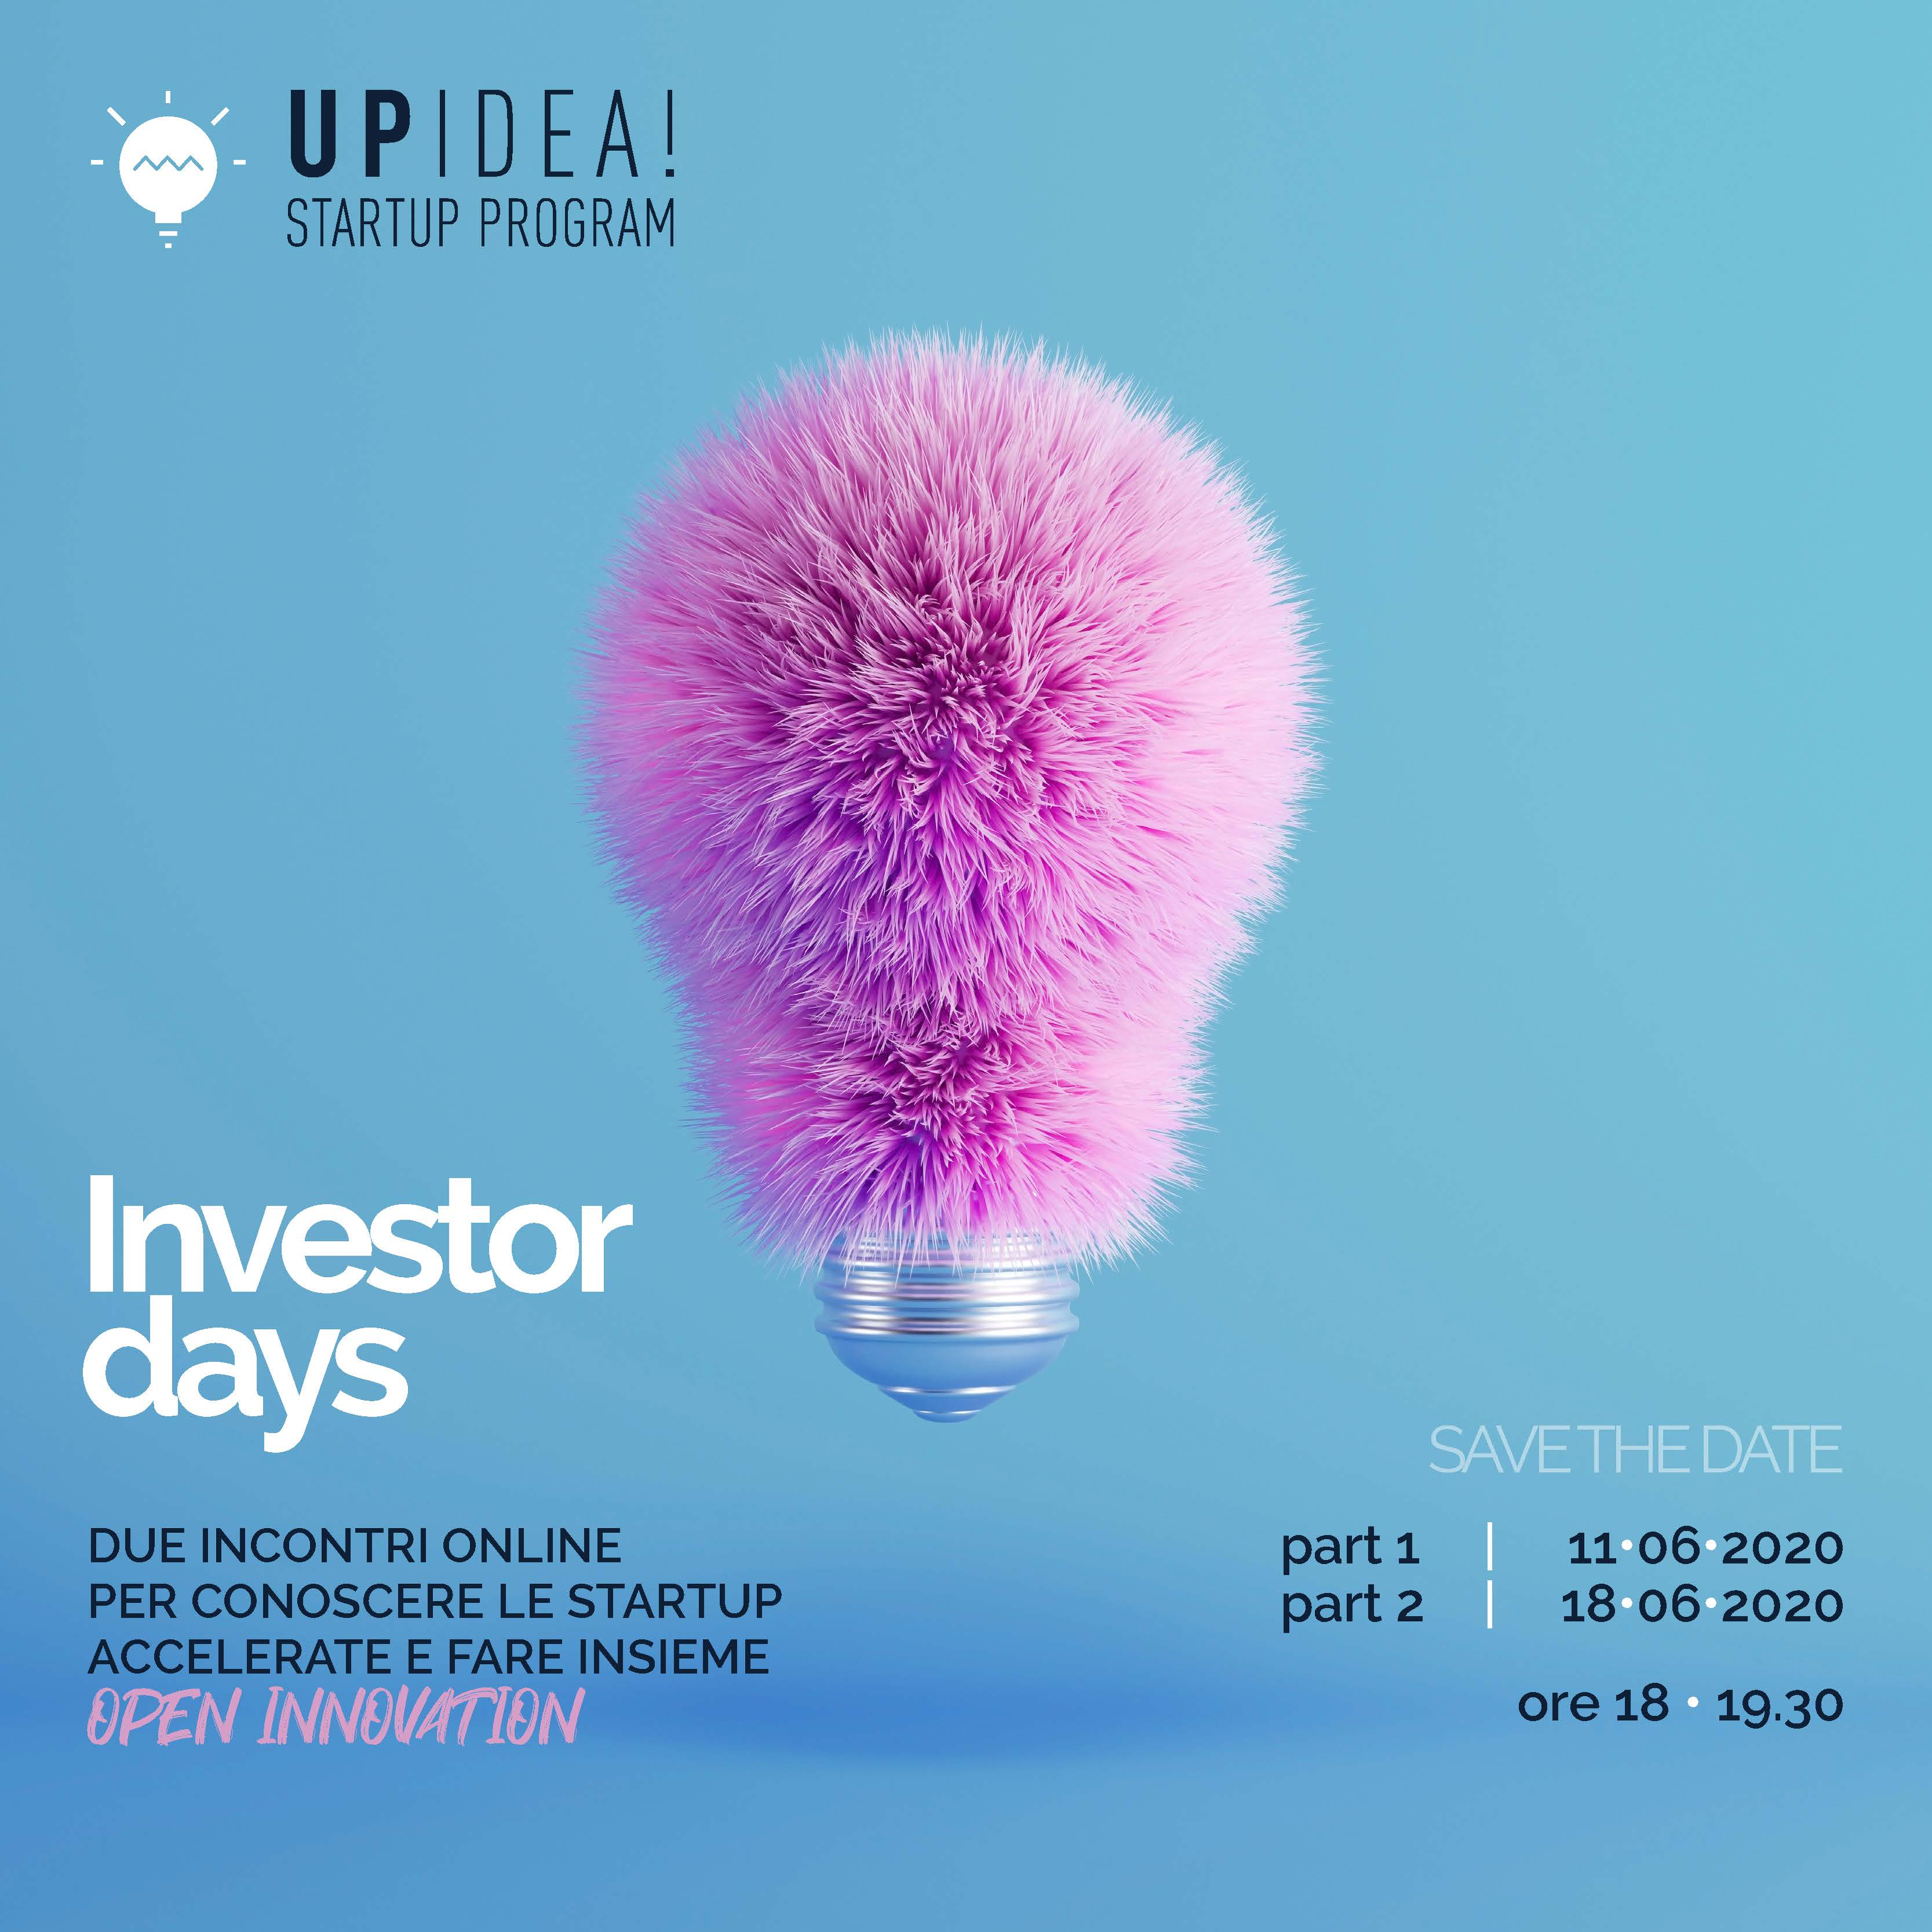 savethedate_investorday_1118062020